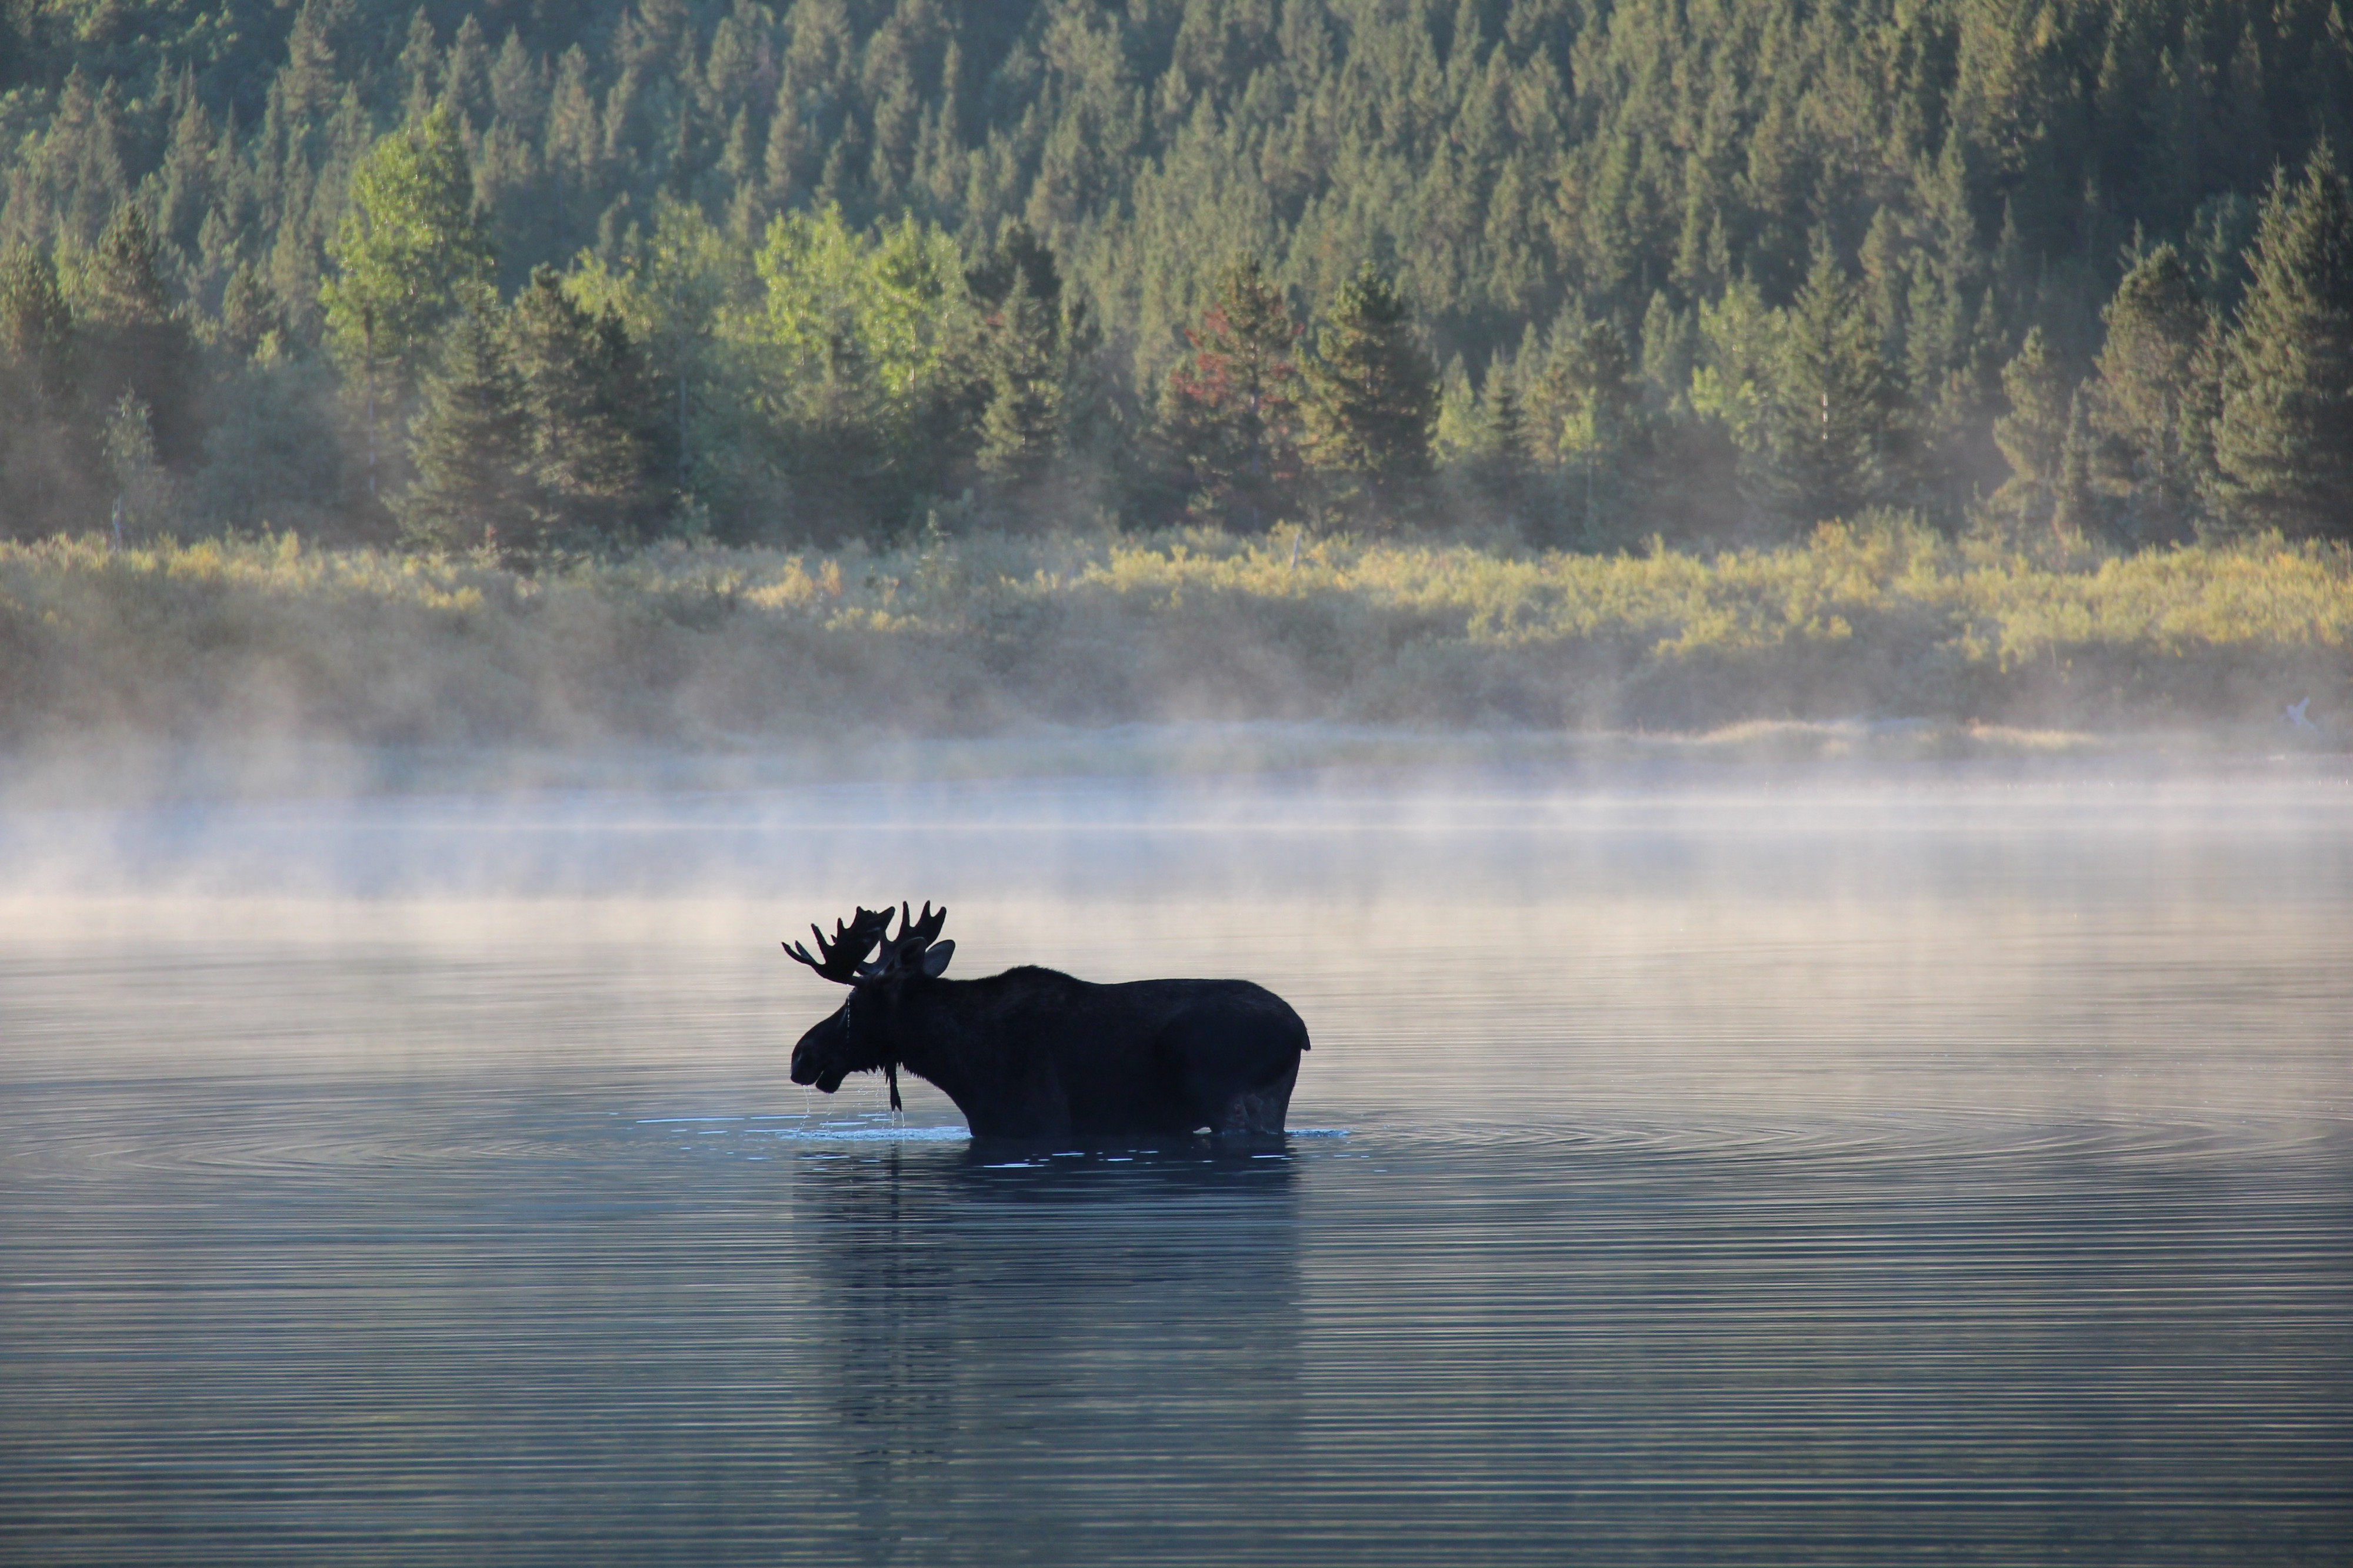 A bull moose walks in the shallows of a lake with mist rising from the water.